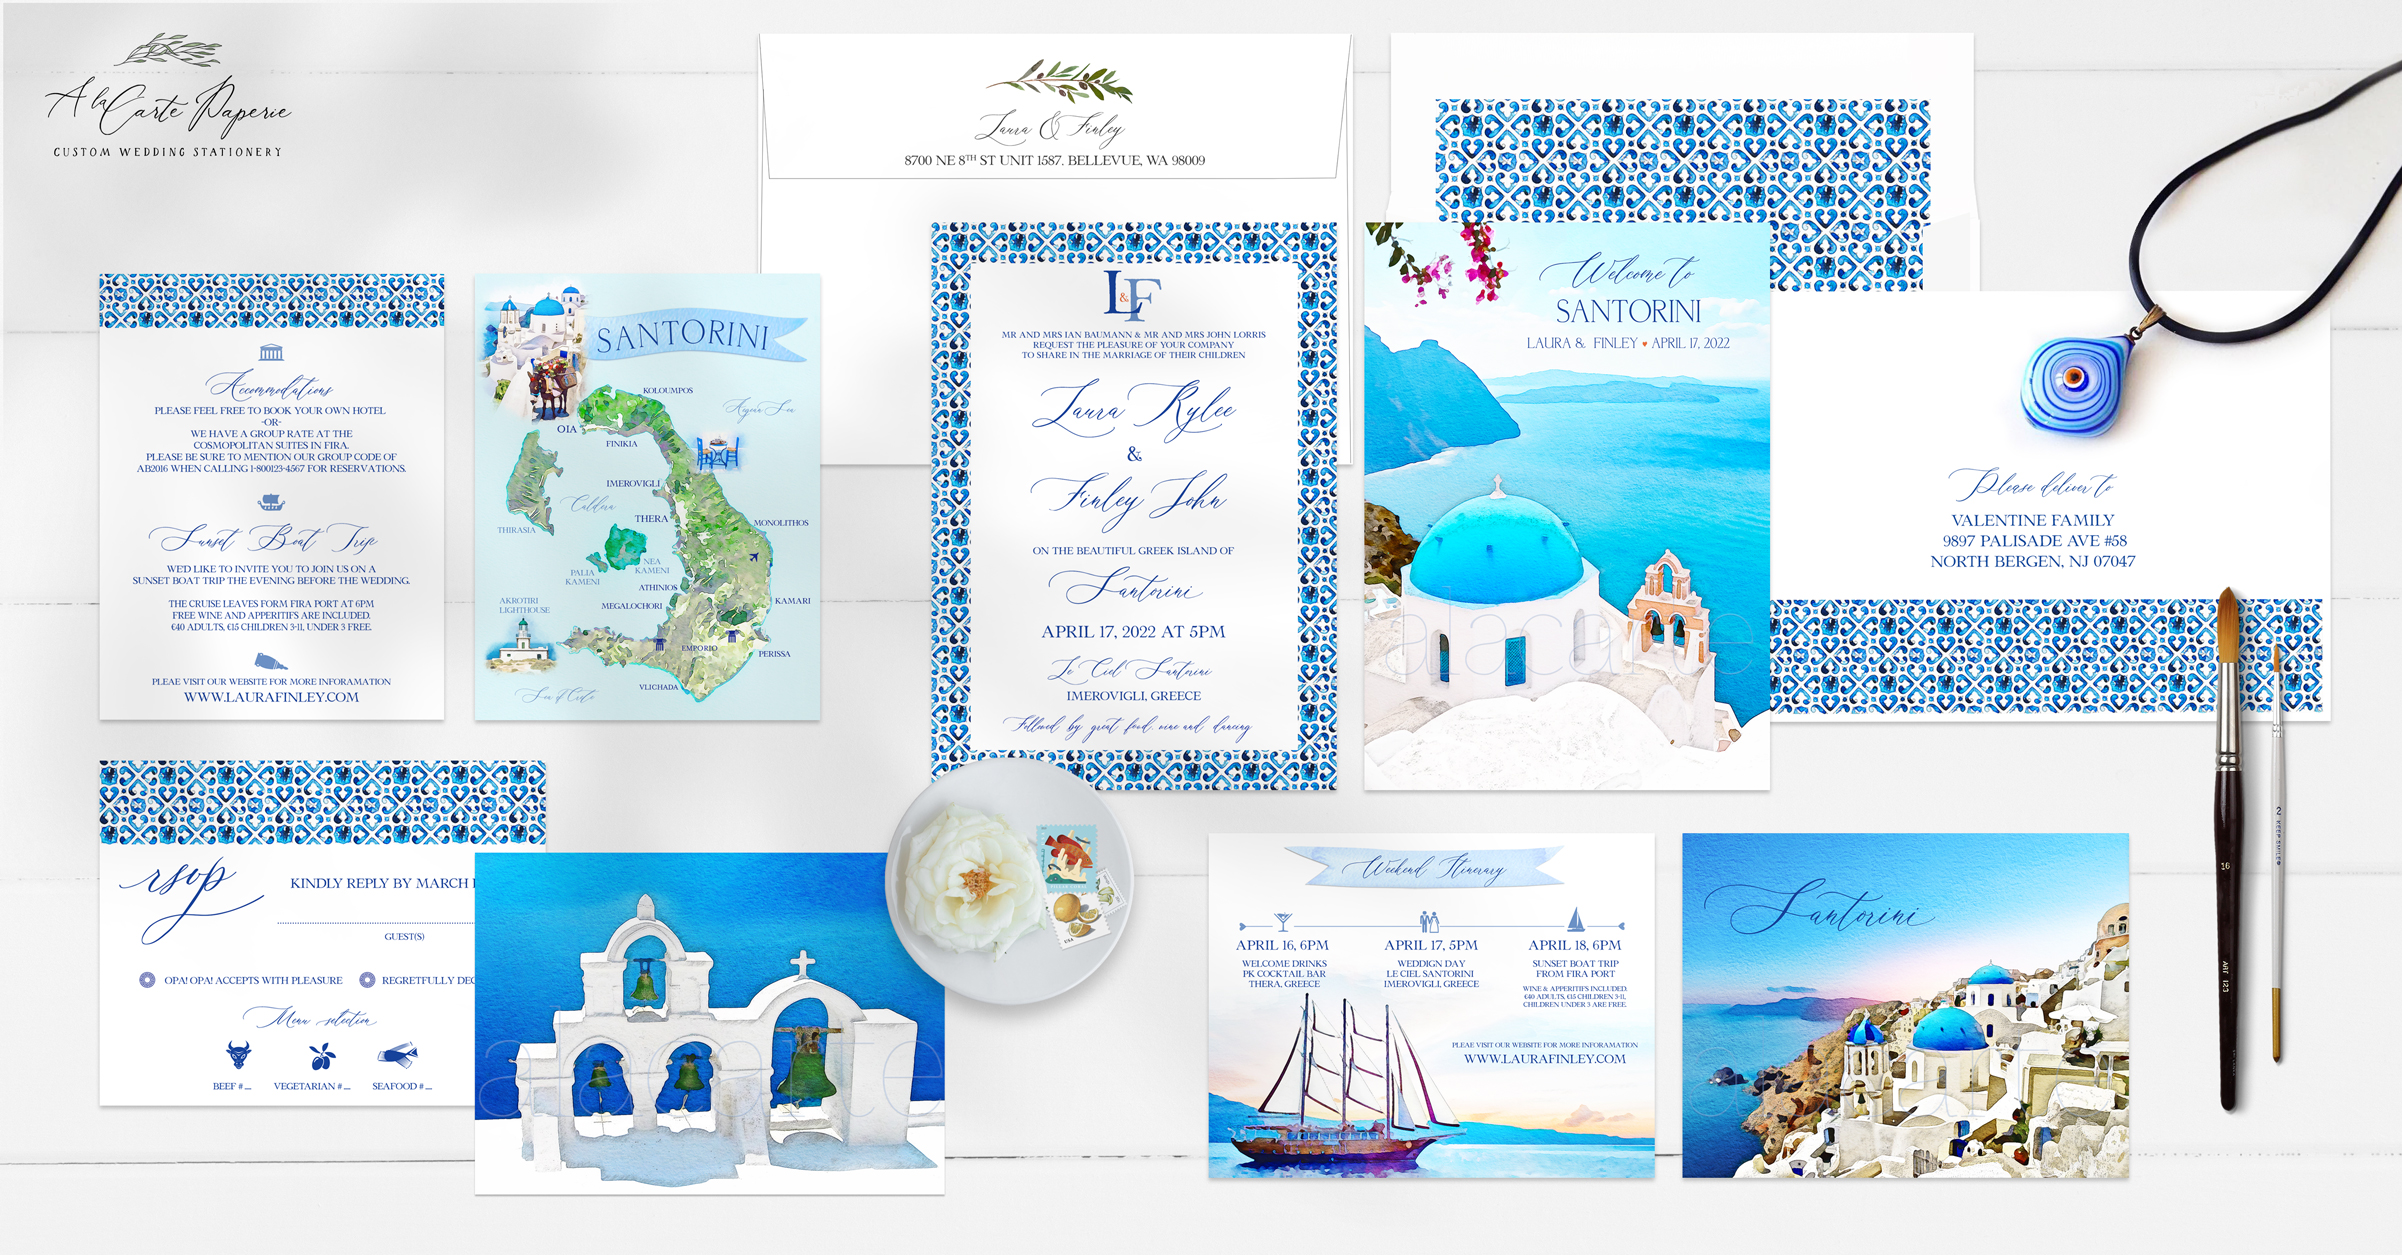 Santorini Greece watercolor illustrated destination wedding invitation set